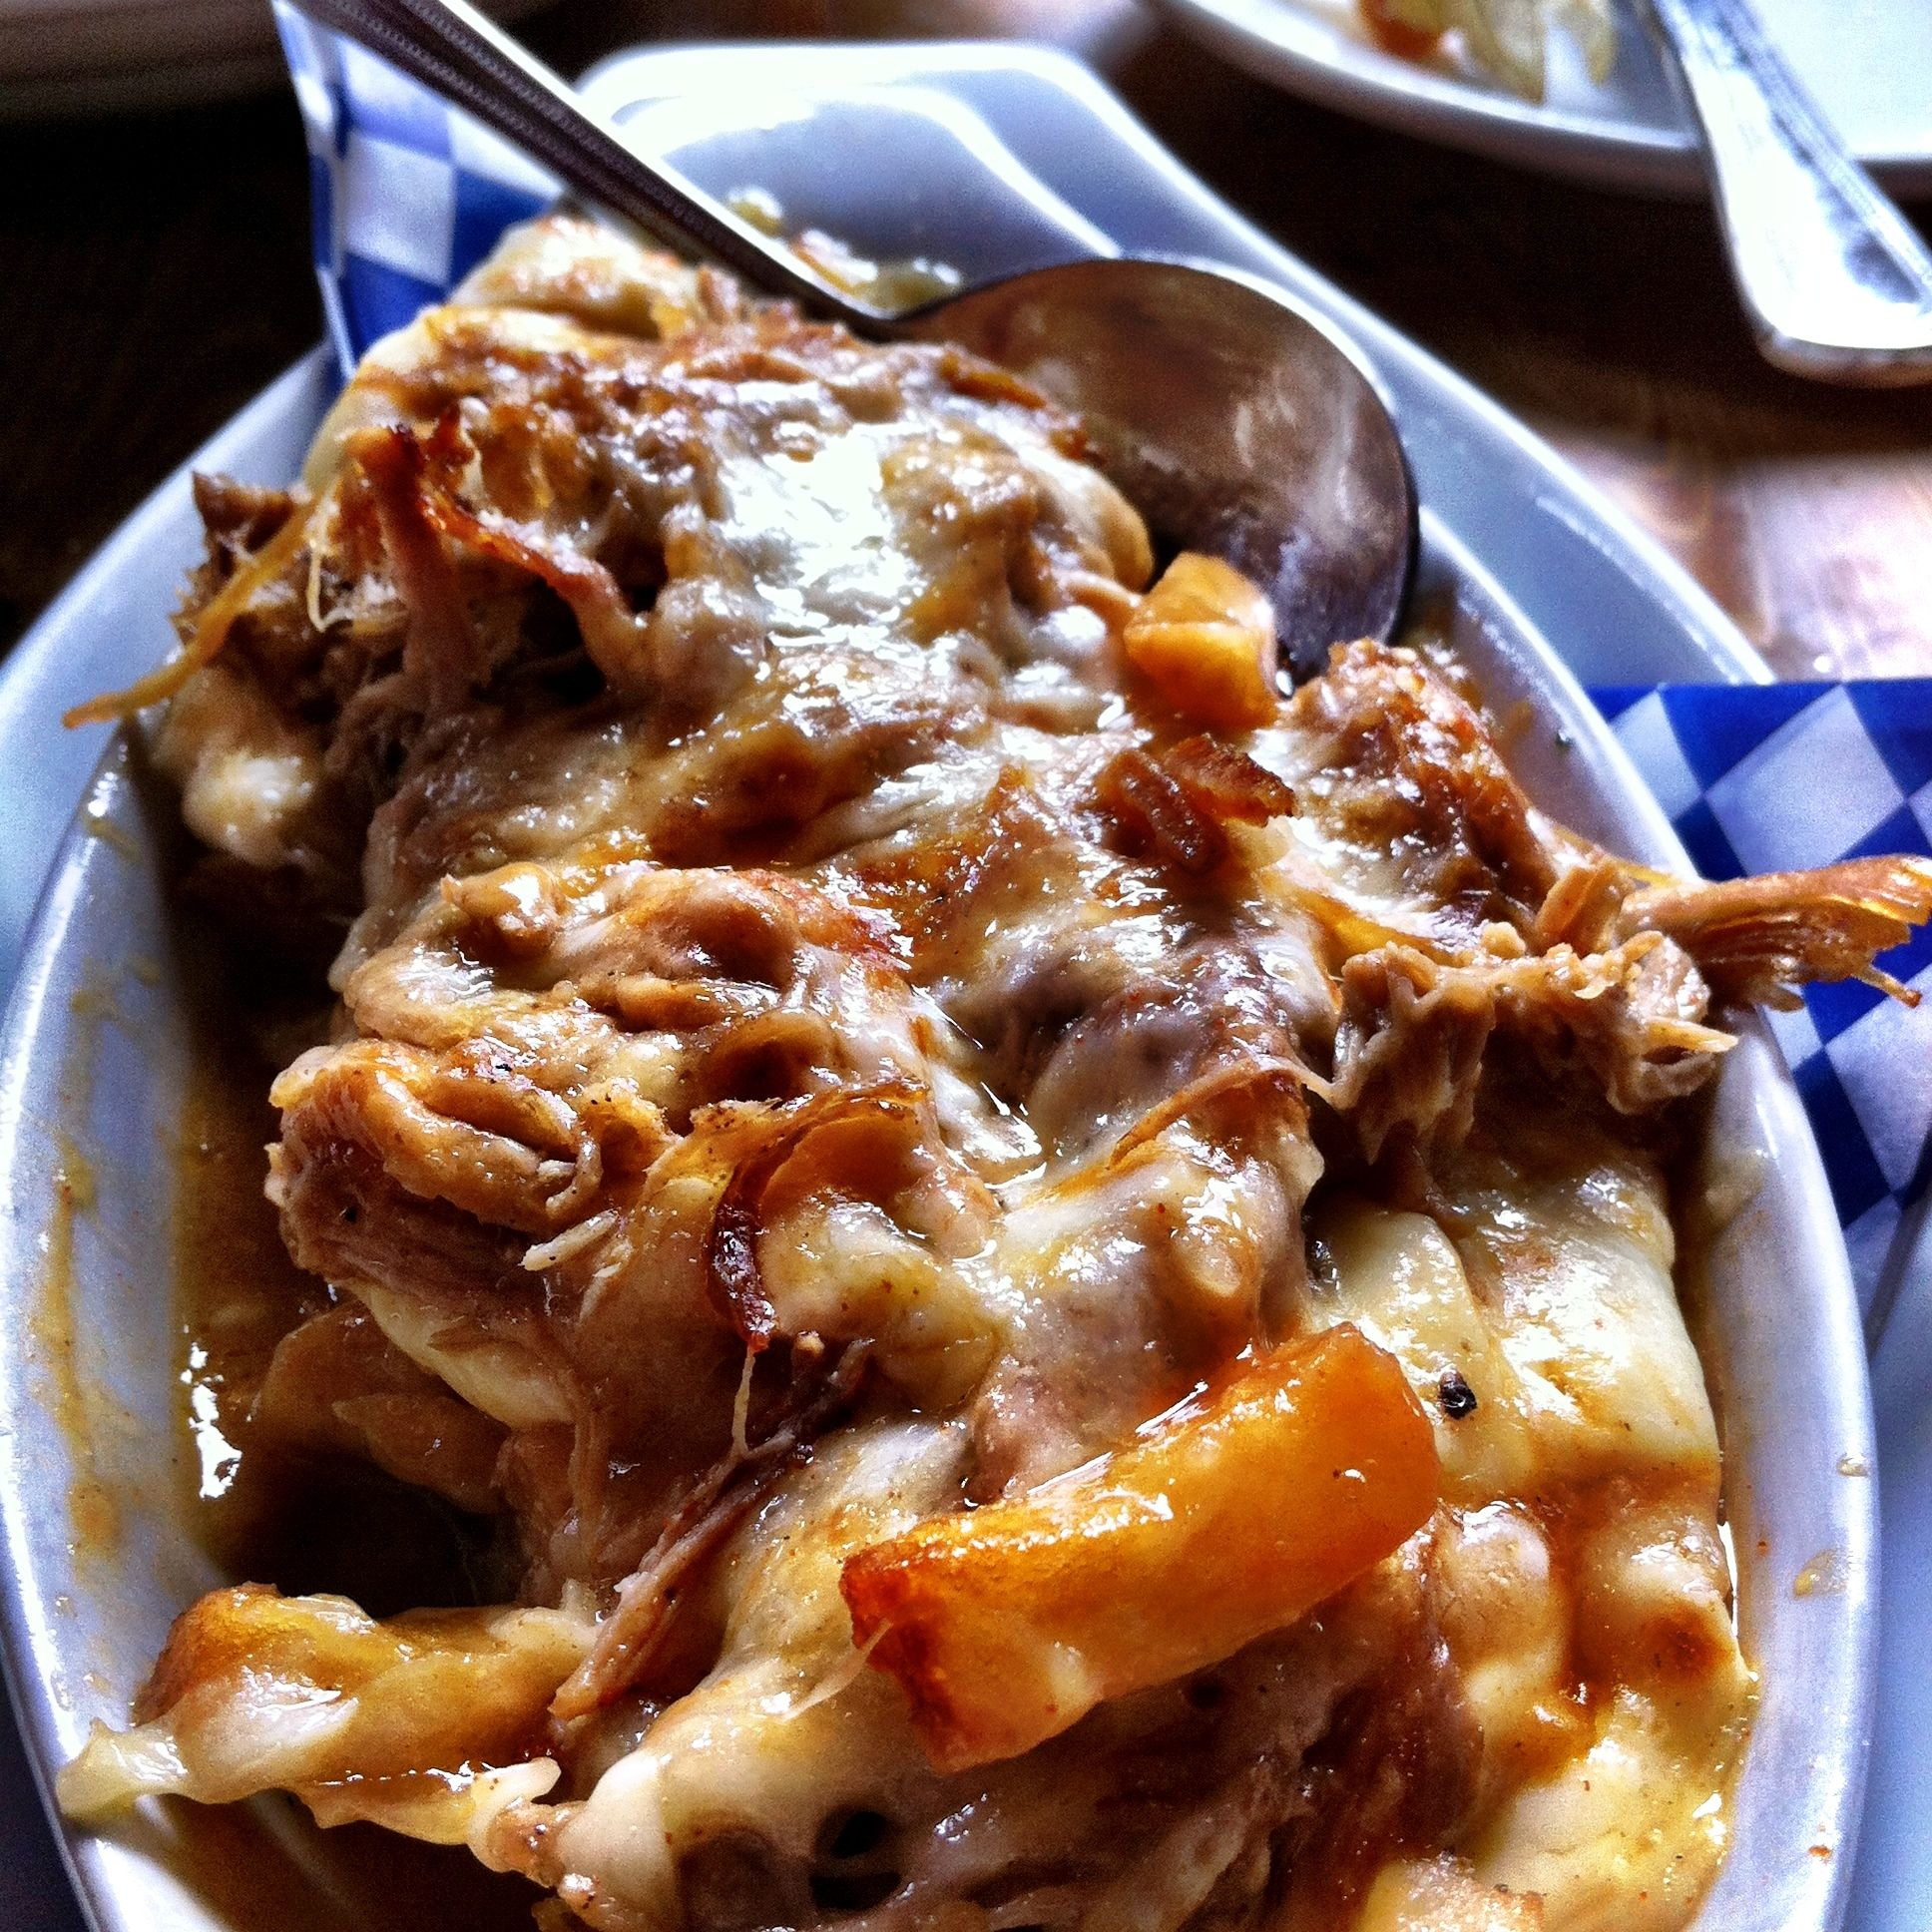 Pulled Pork Poutine From The Flying Pig, Vancouver, BC